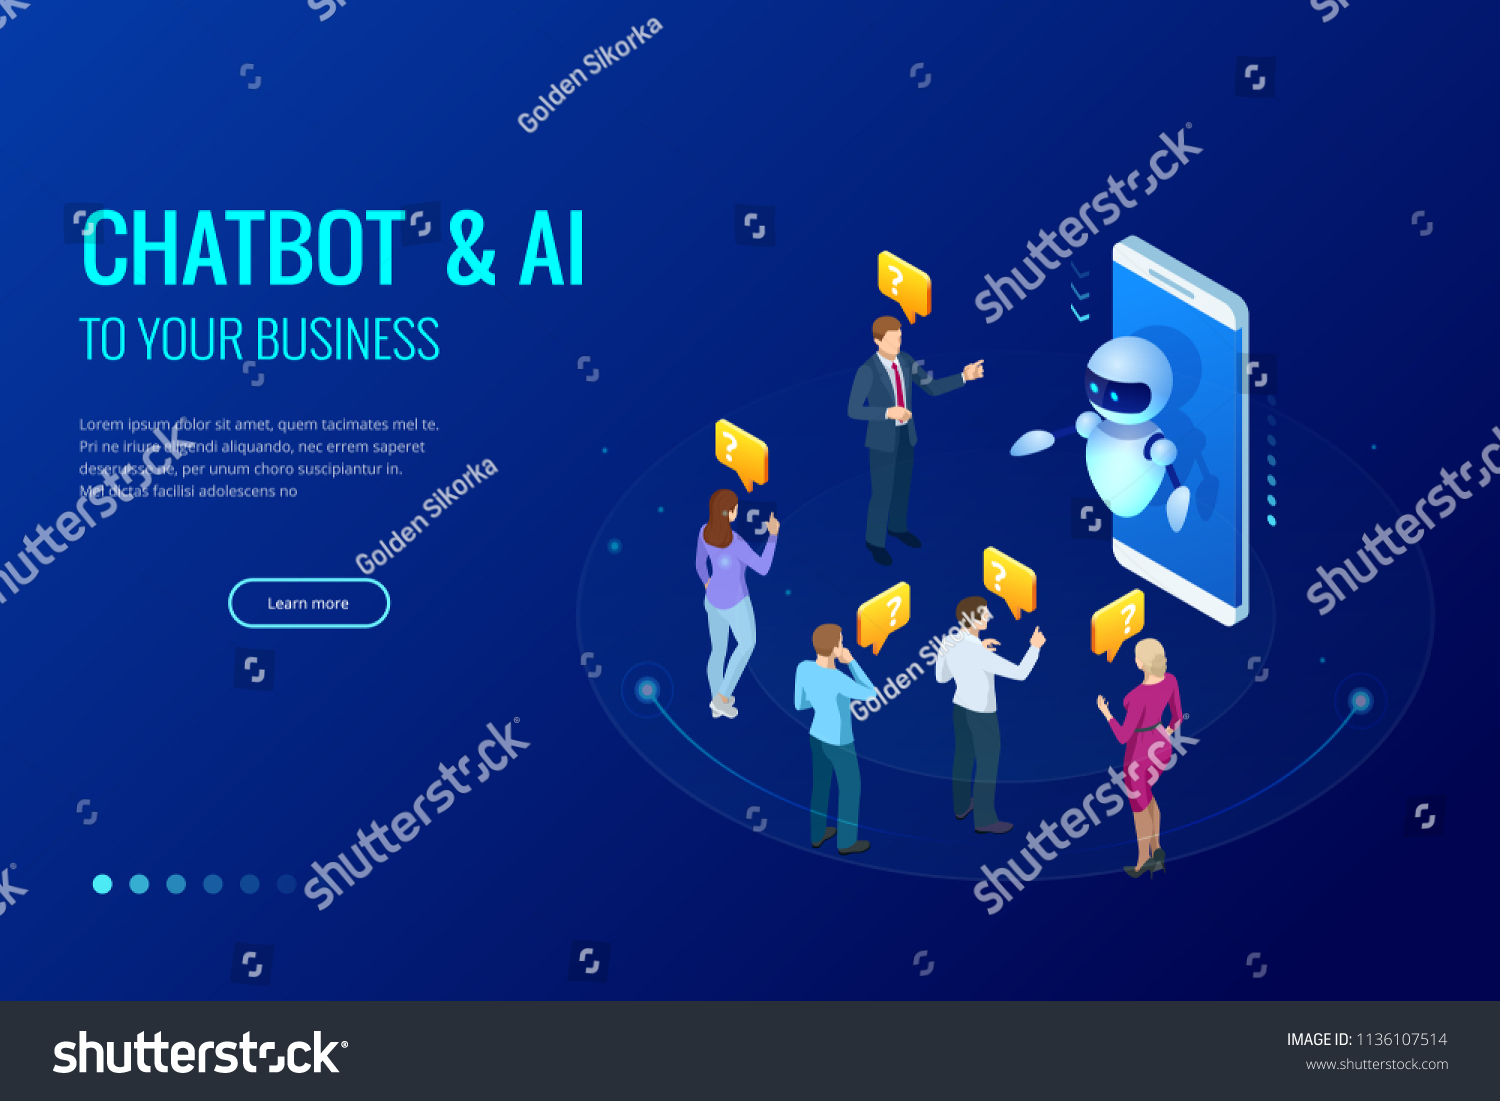 Isometric Artificial Intelligence Chat Bot Future Stock Vector Remote Control Circuit Board Promotiononline Shopping For Promotional And Marketing Ai Business Iot Concept